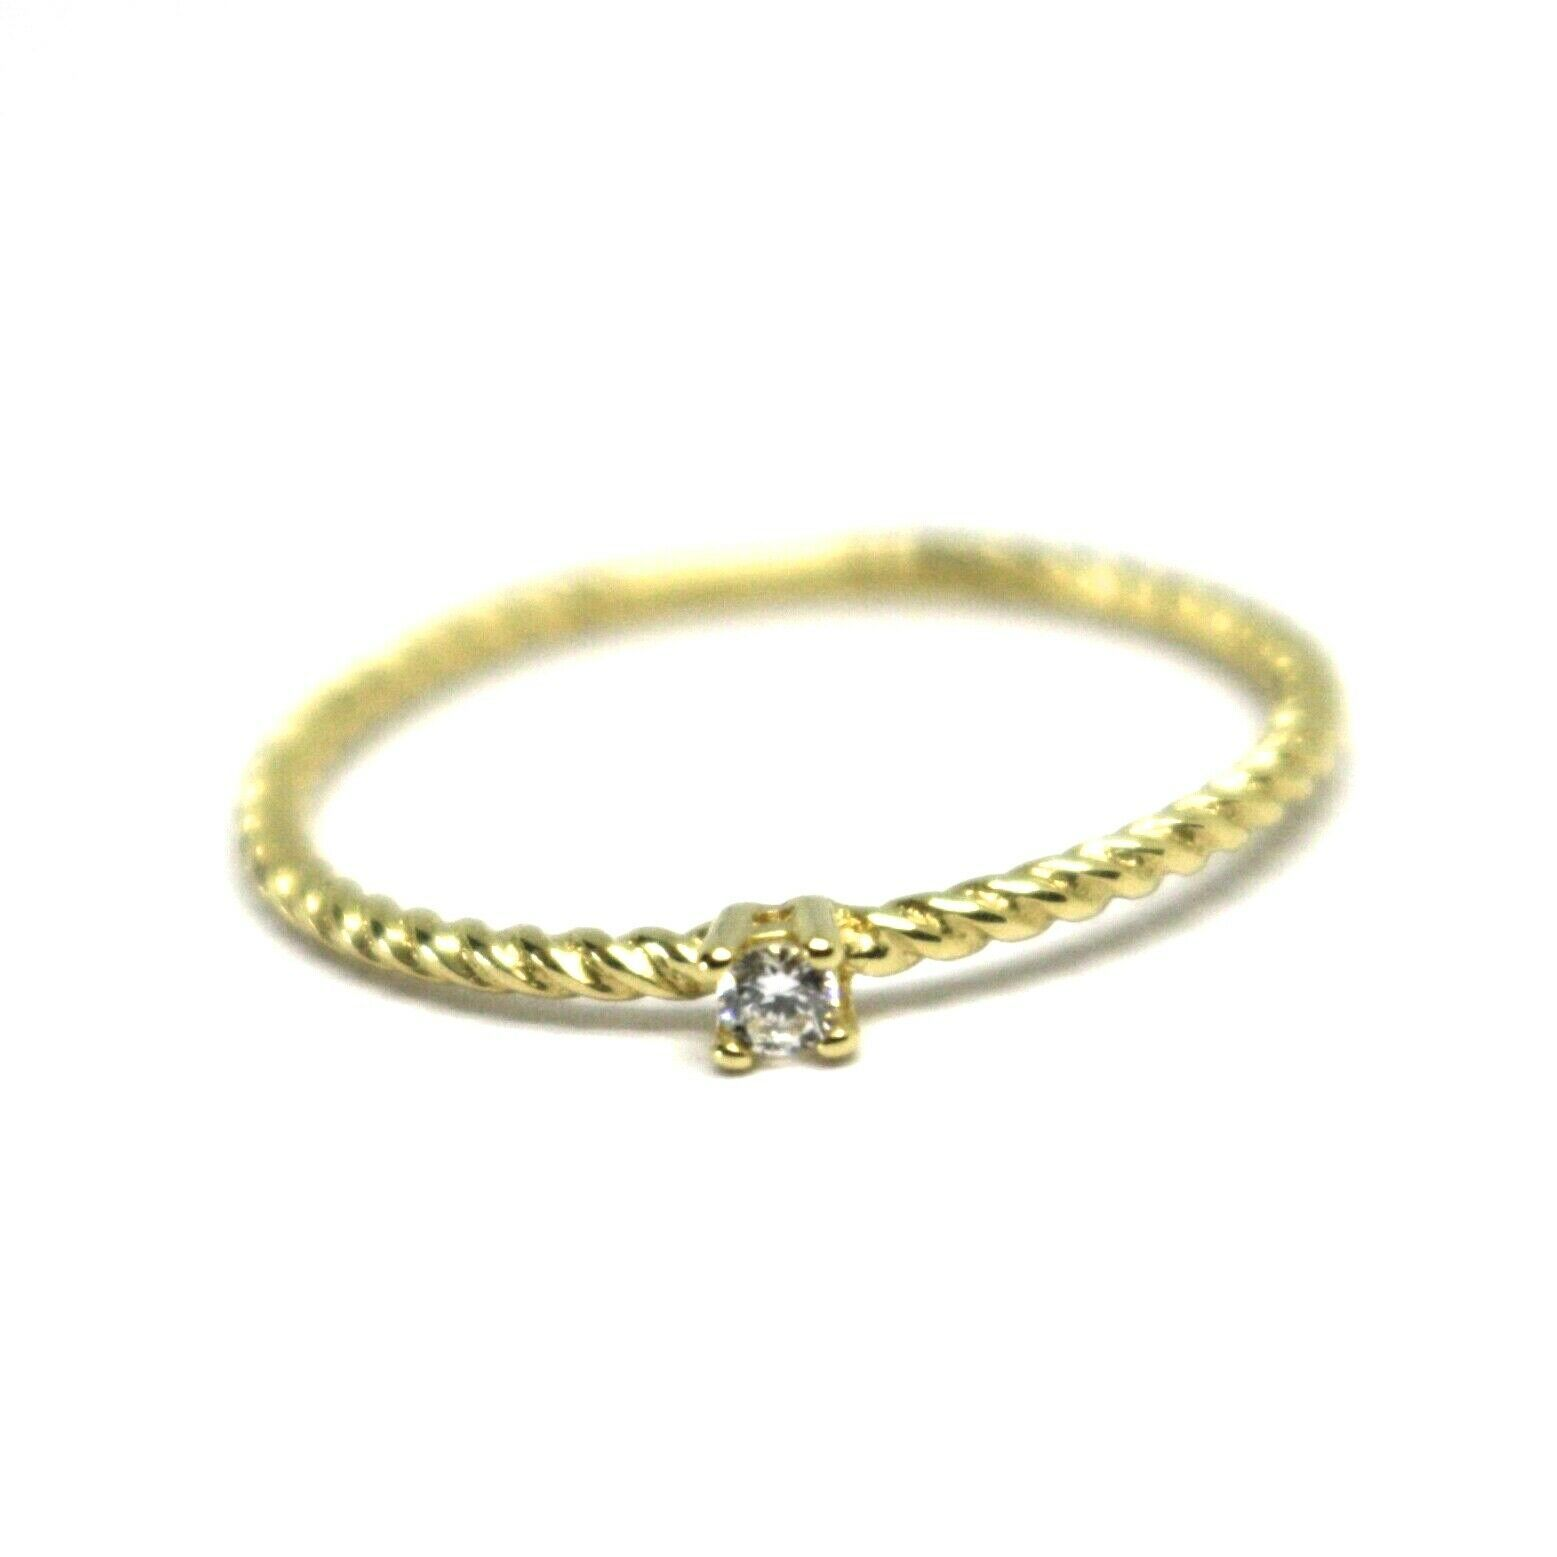 SOLID 18K YELLOW GOLD RING, MINI SOLITAIRE CUBIC ZIRCONIA WIRE ROUND BRAID TUBE